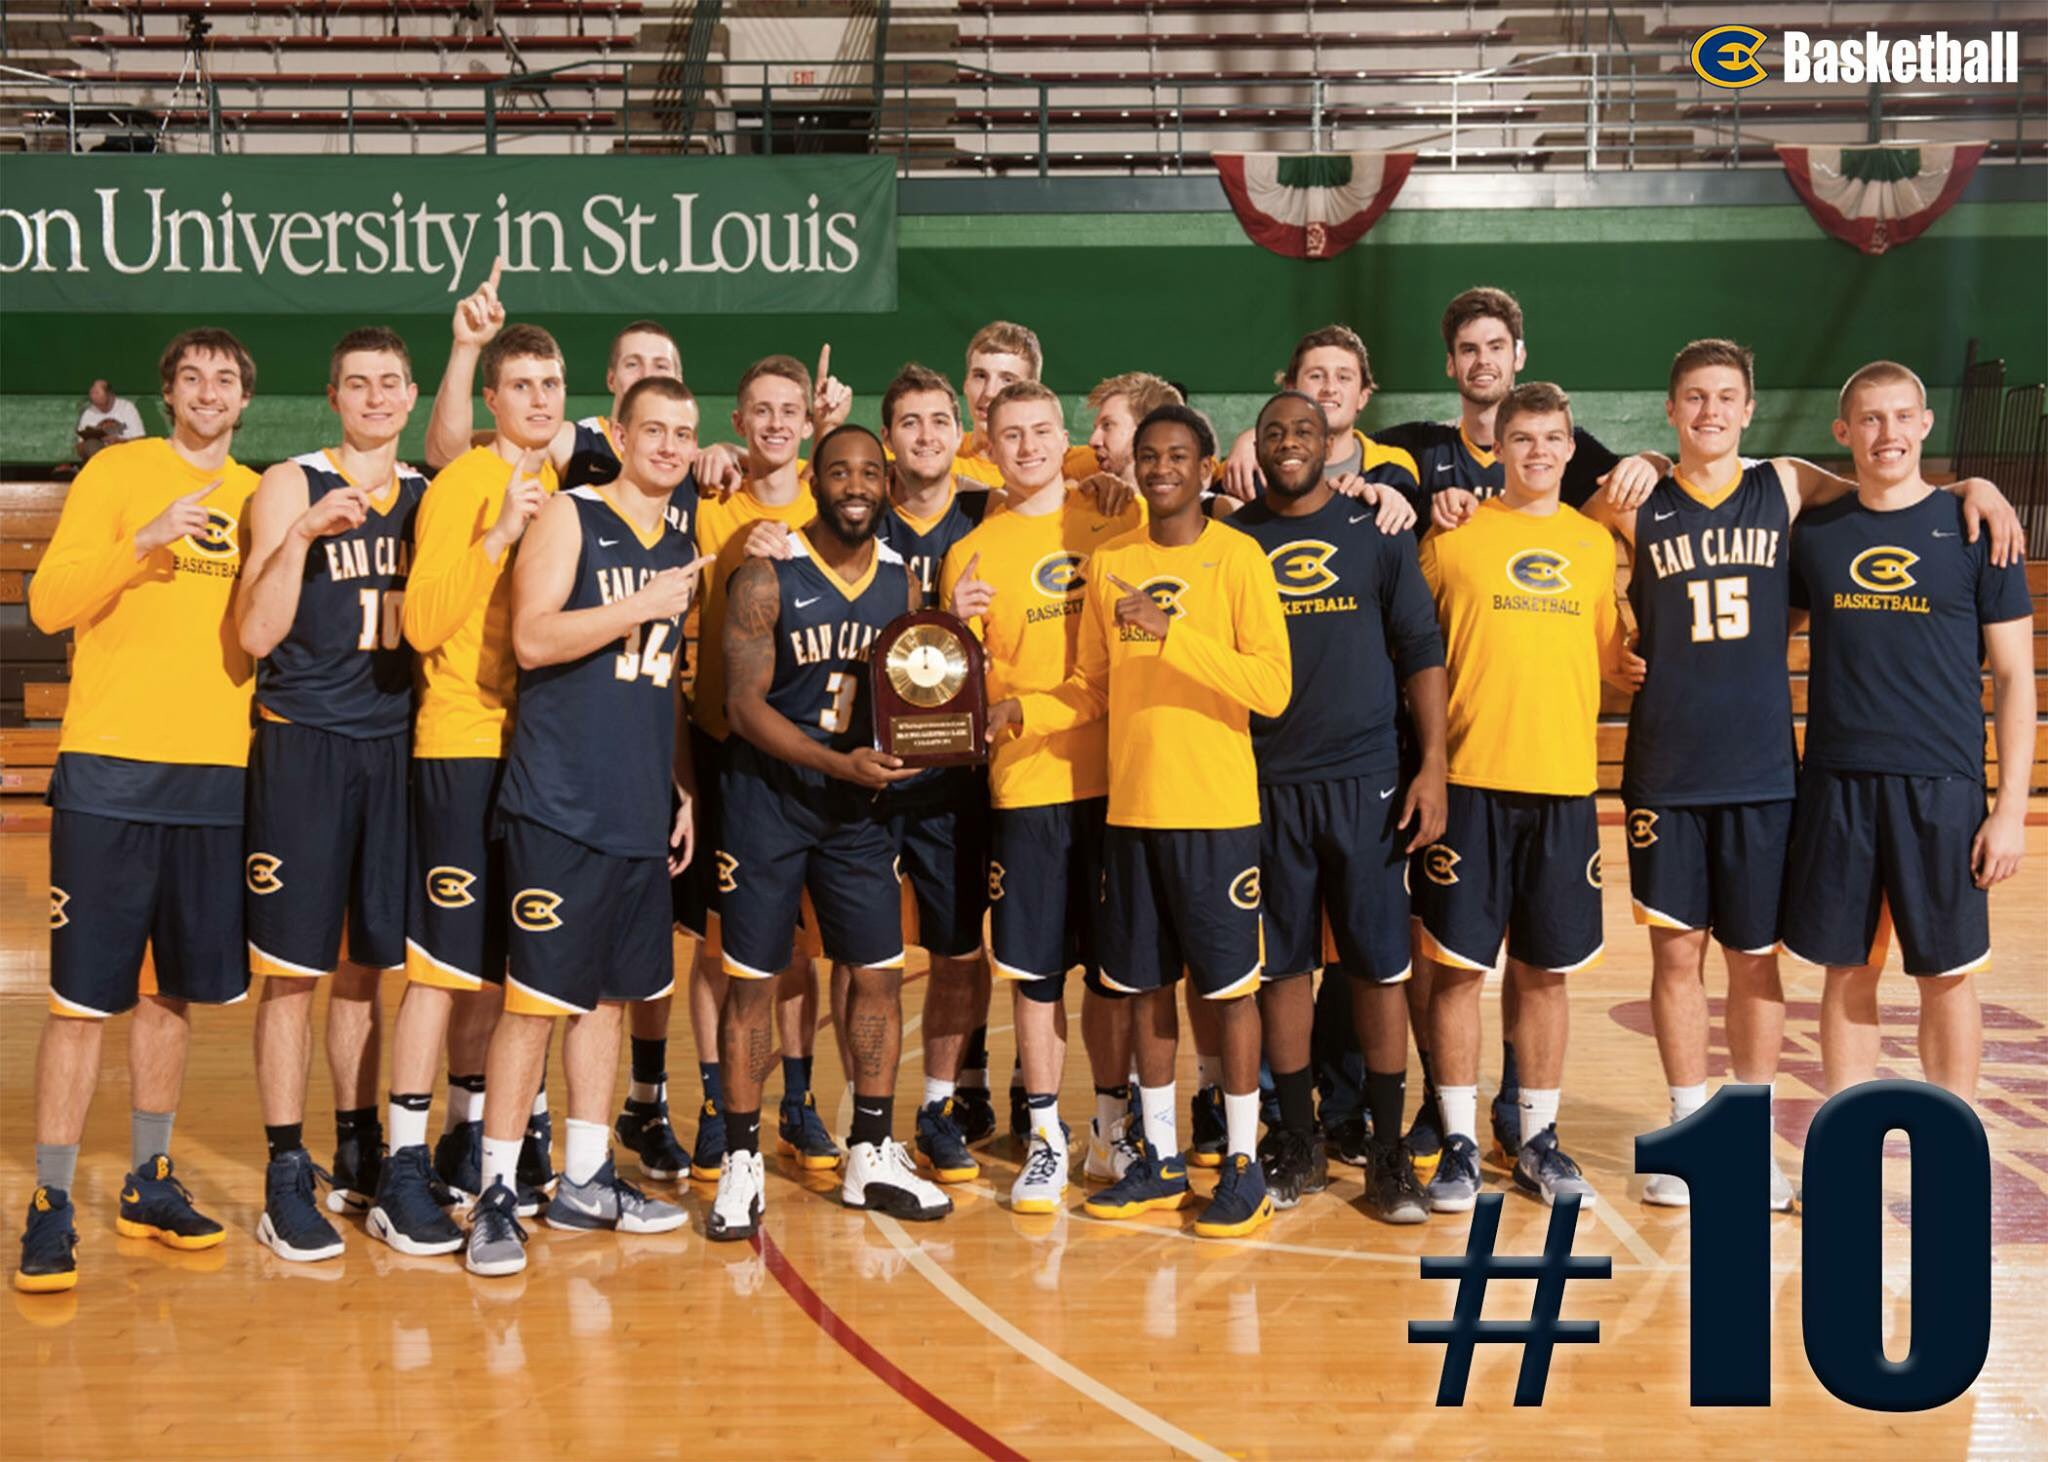 Hard work pays off. Moving up 11 spots to no. 10 in the nation.   #NeverSatisfied https://t.co/6hdautNUmE